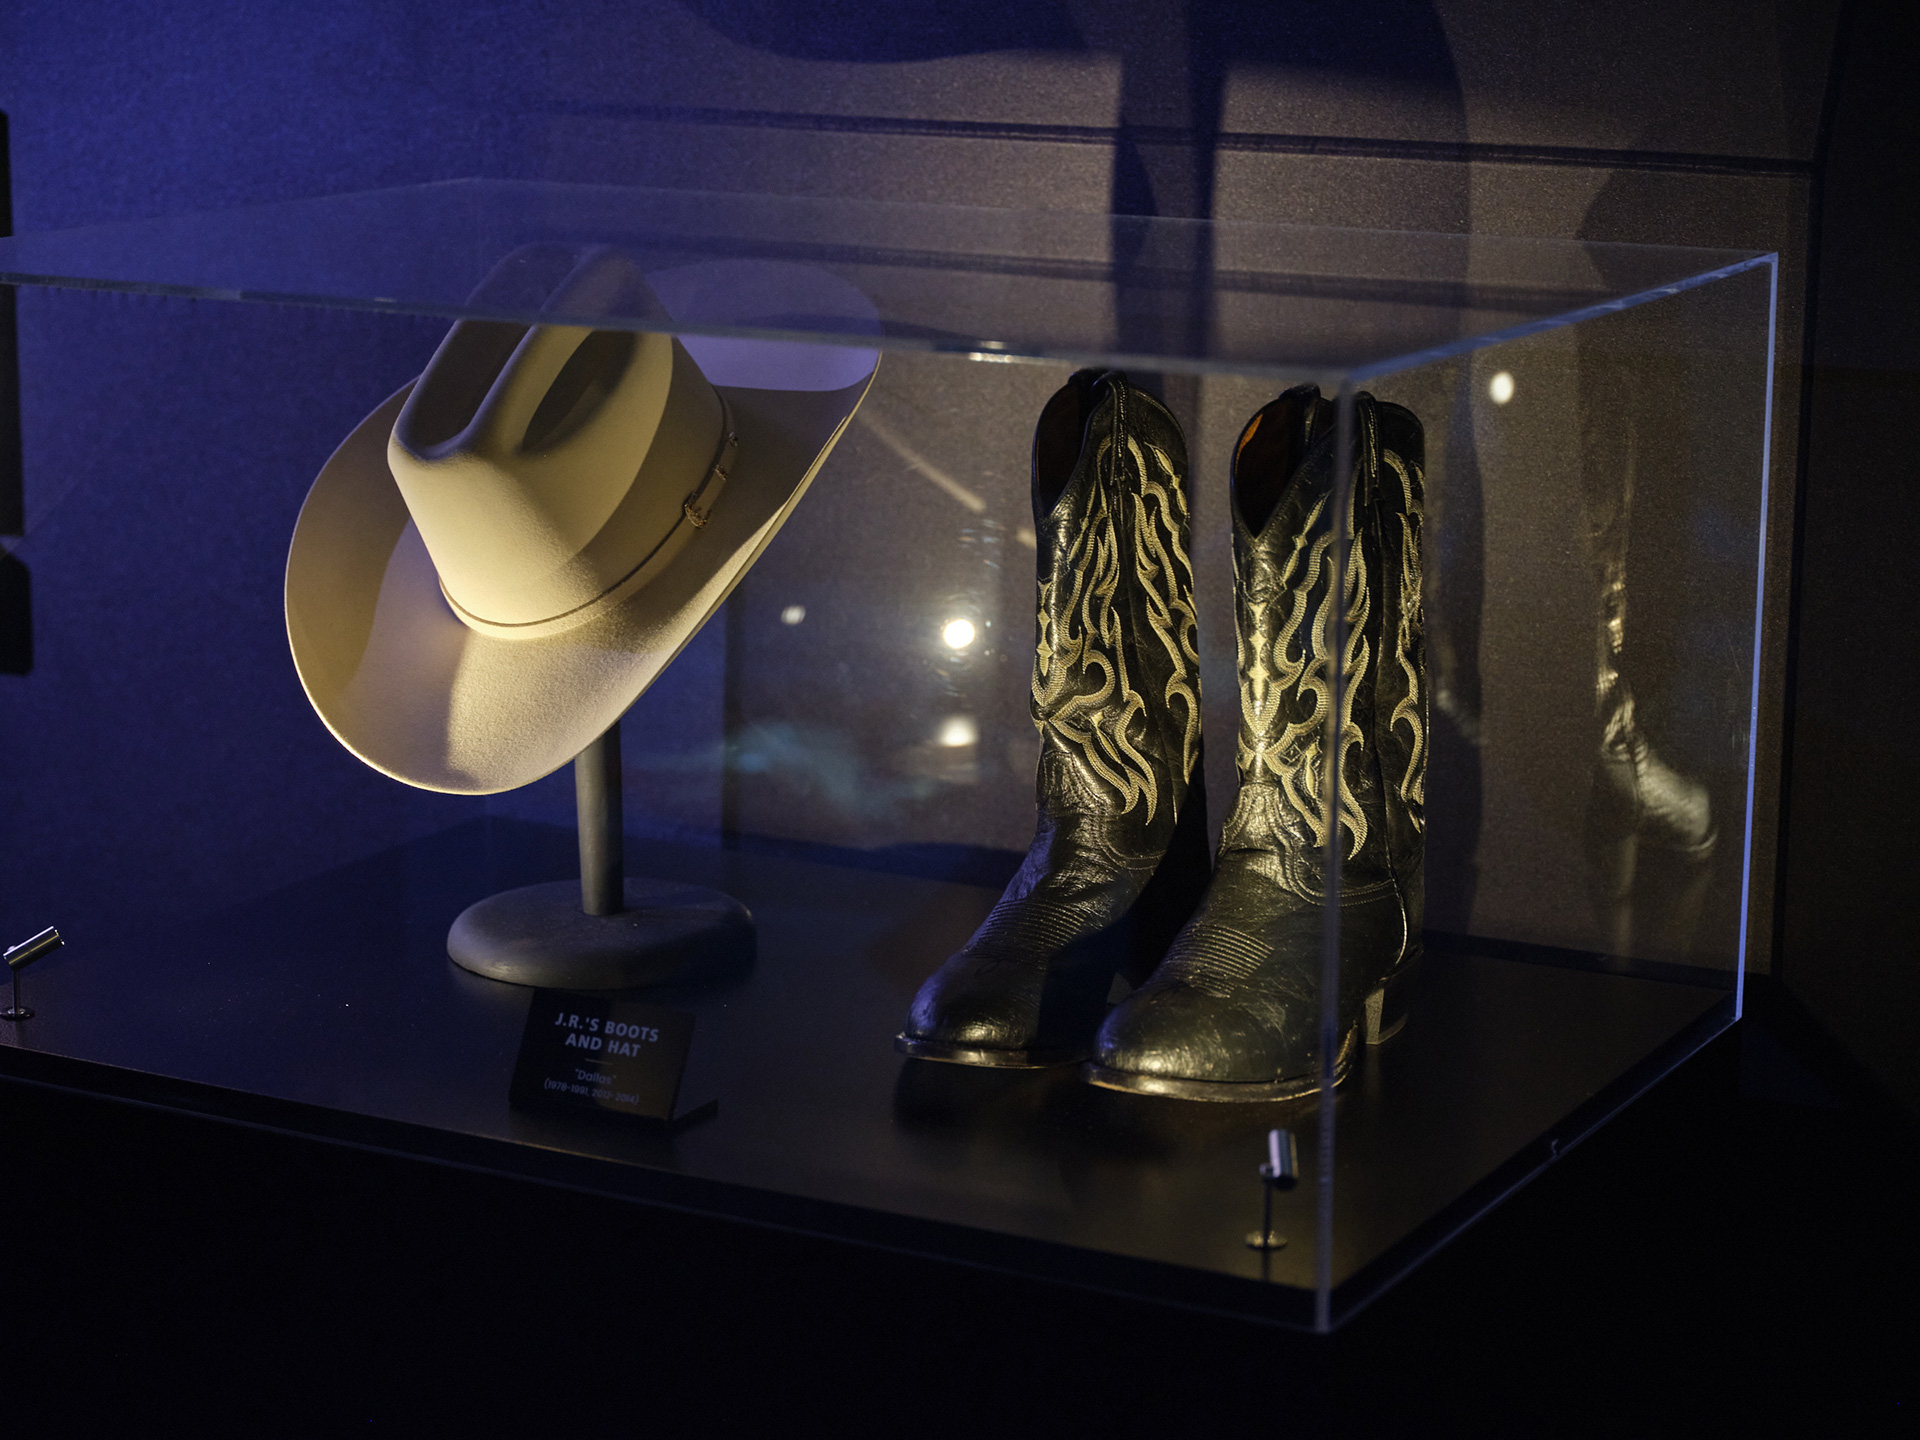 a-local-tour-through-entertainment-history-3-j-r-boots-and-hat-dallas